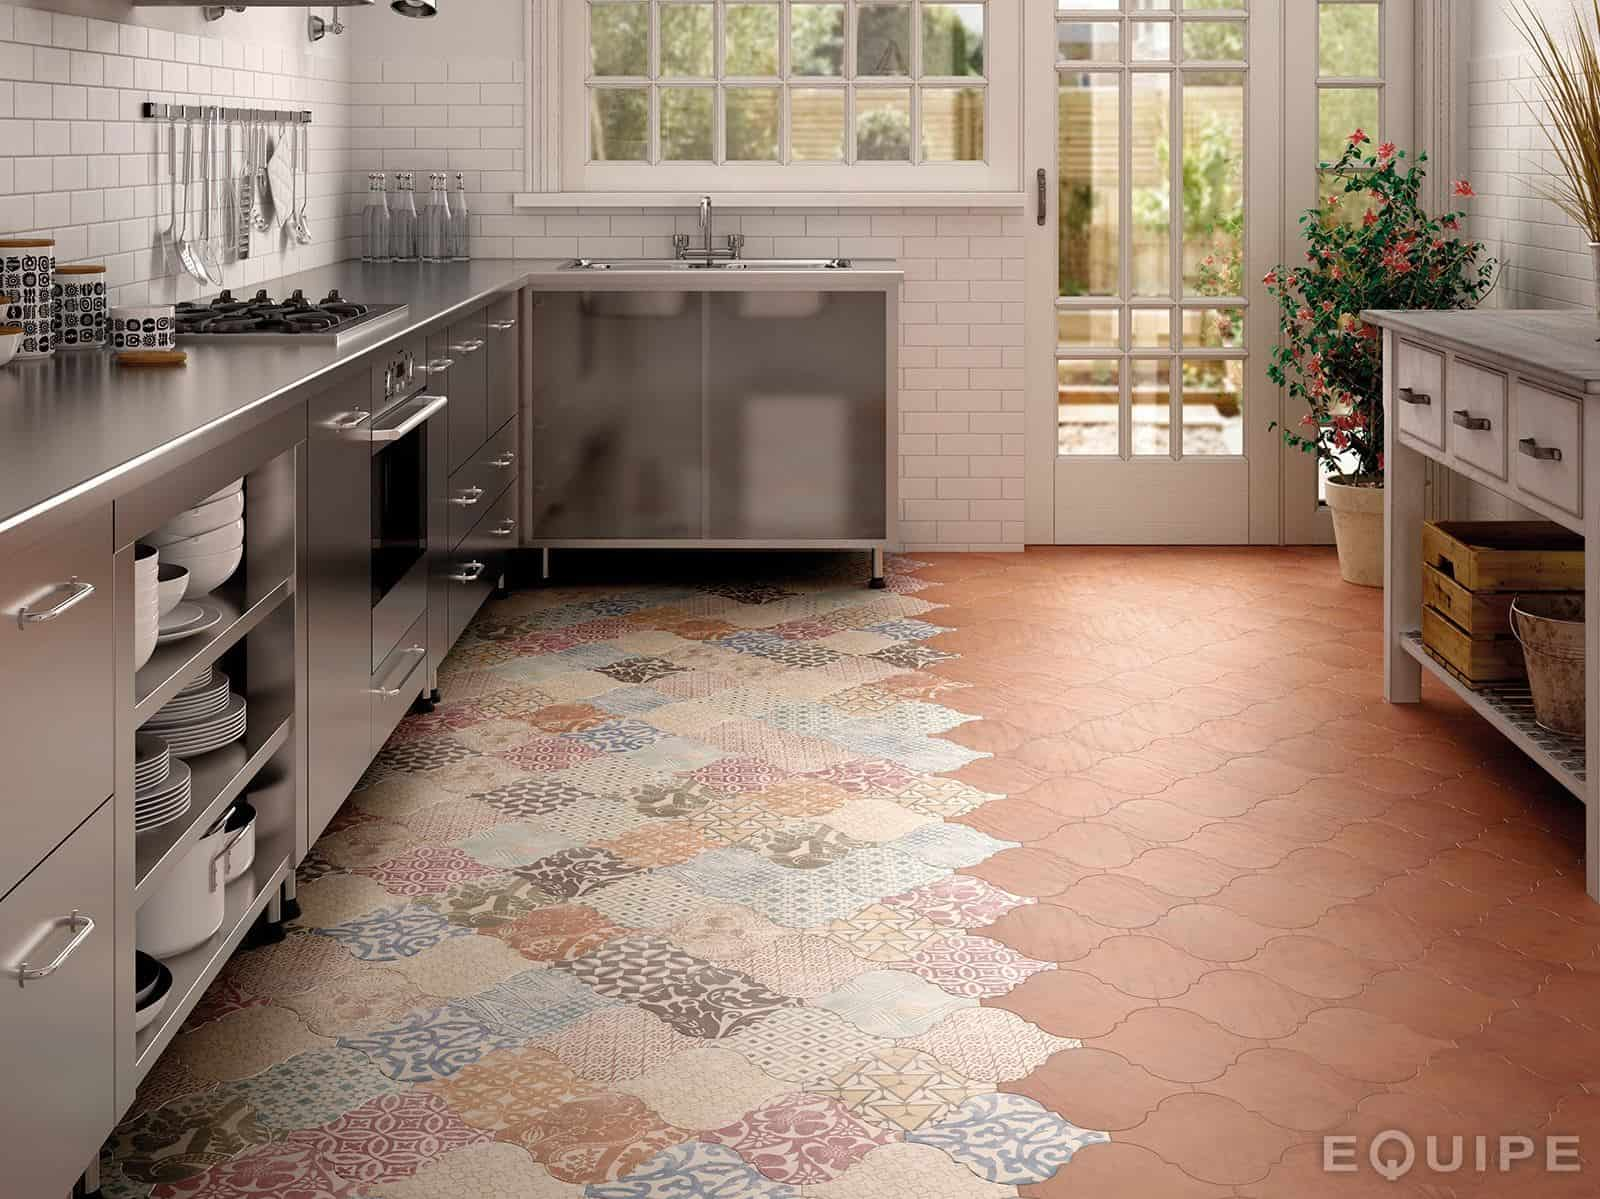 21 arabesque tile ideas for floor wall and backsplash for Tiling kitchen floor